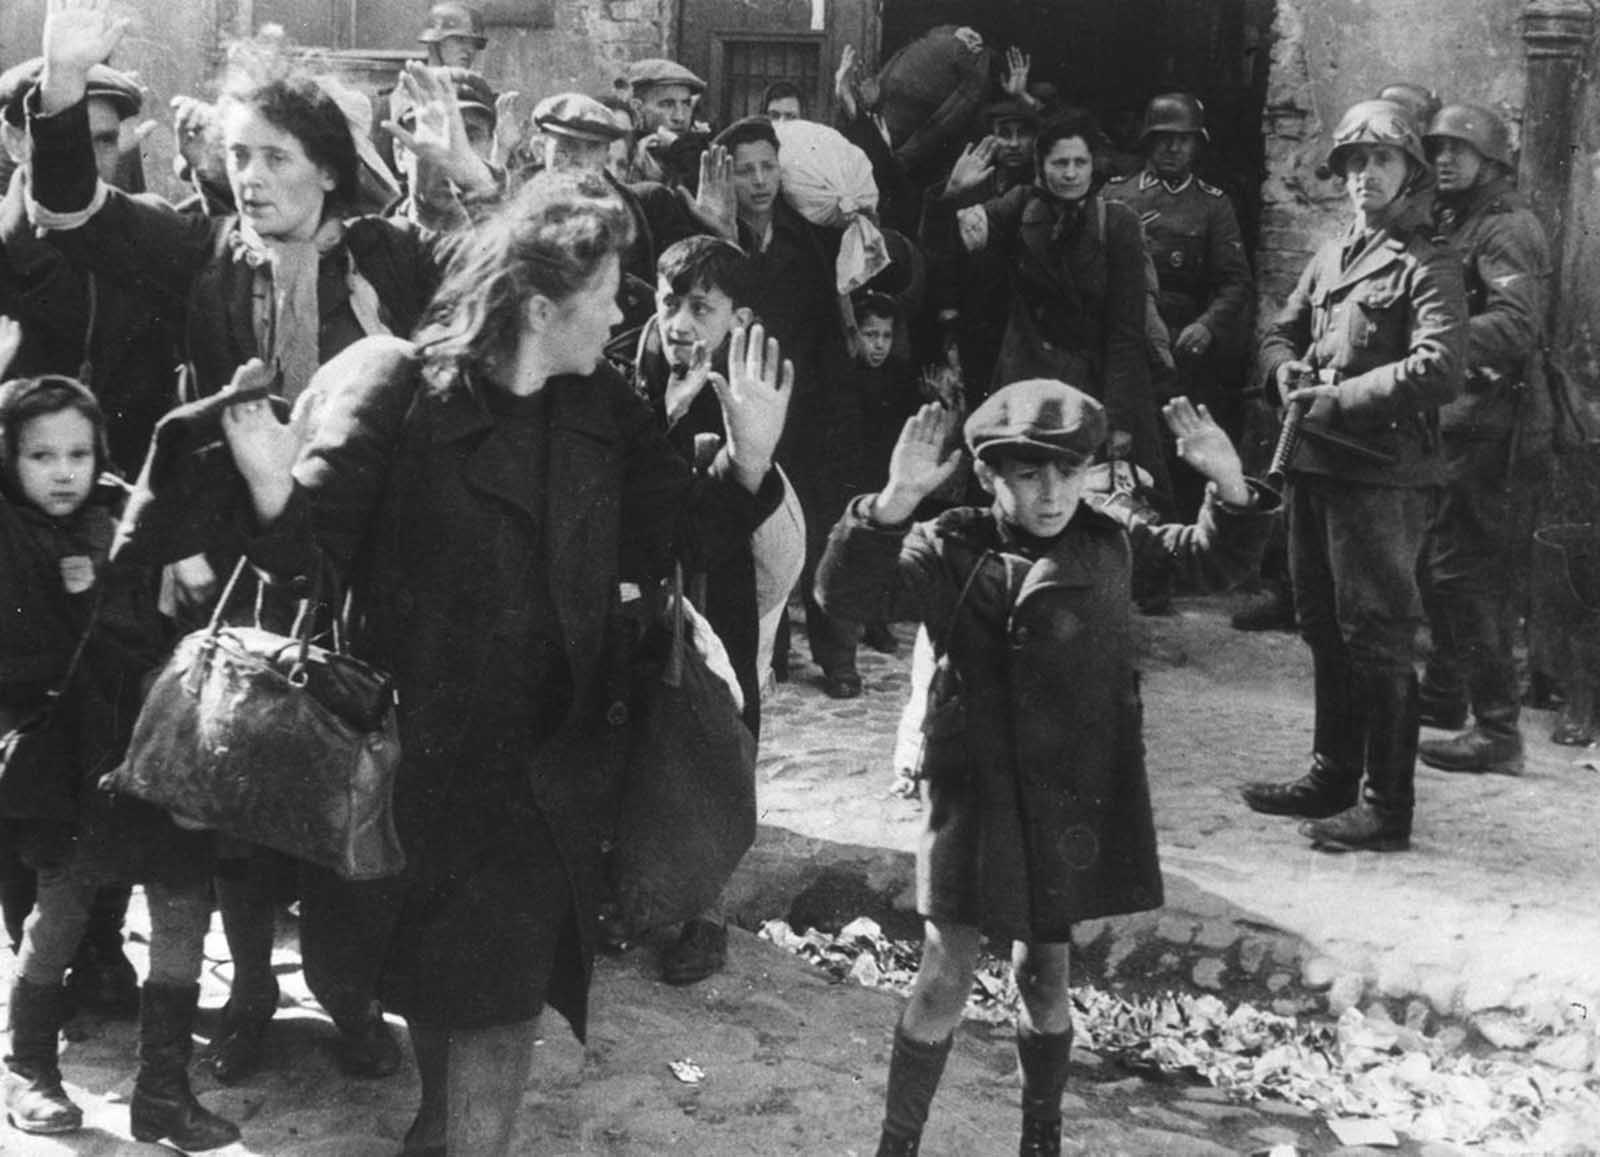 A group of Jews, including a small boy, is escorted from the Warsaw Ghetto by German soldiers in this April 19, 1943 photo. The picture formed part of a report from SS Gen. Stroop to his Commanding Officer, and was introduced as evidence to the War Crimes trials in Nuremberg in 1945.